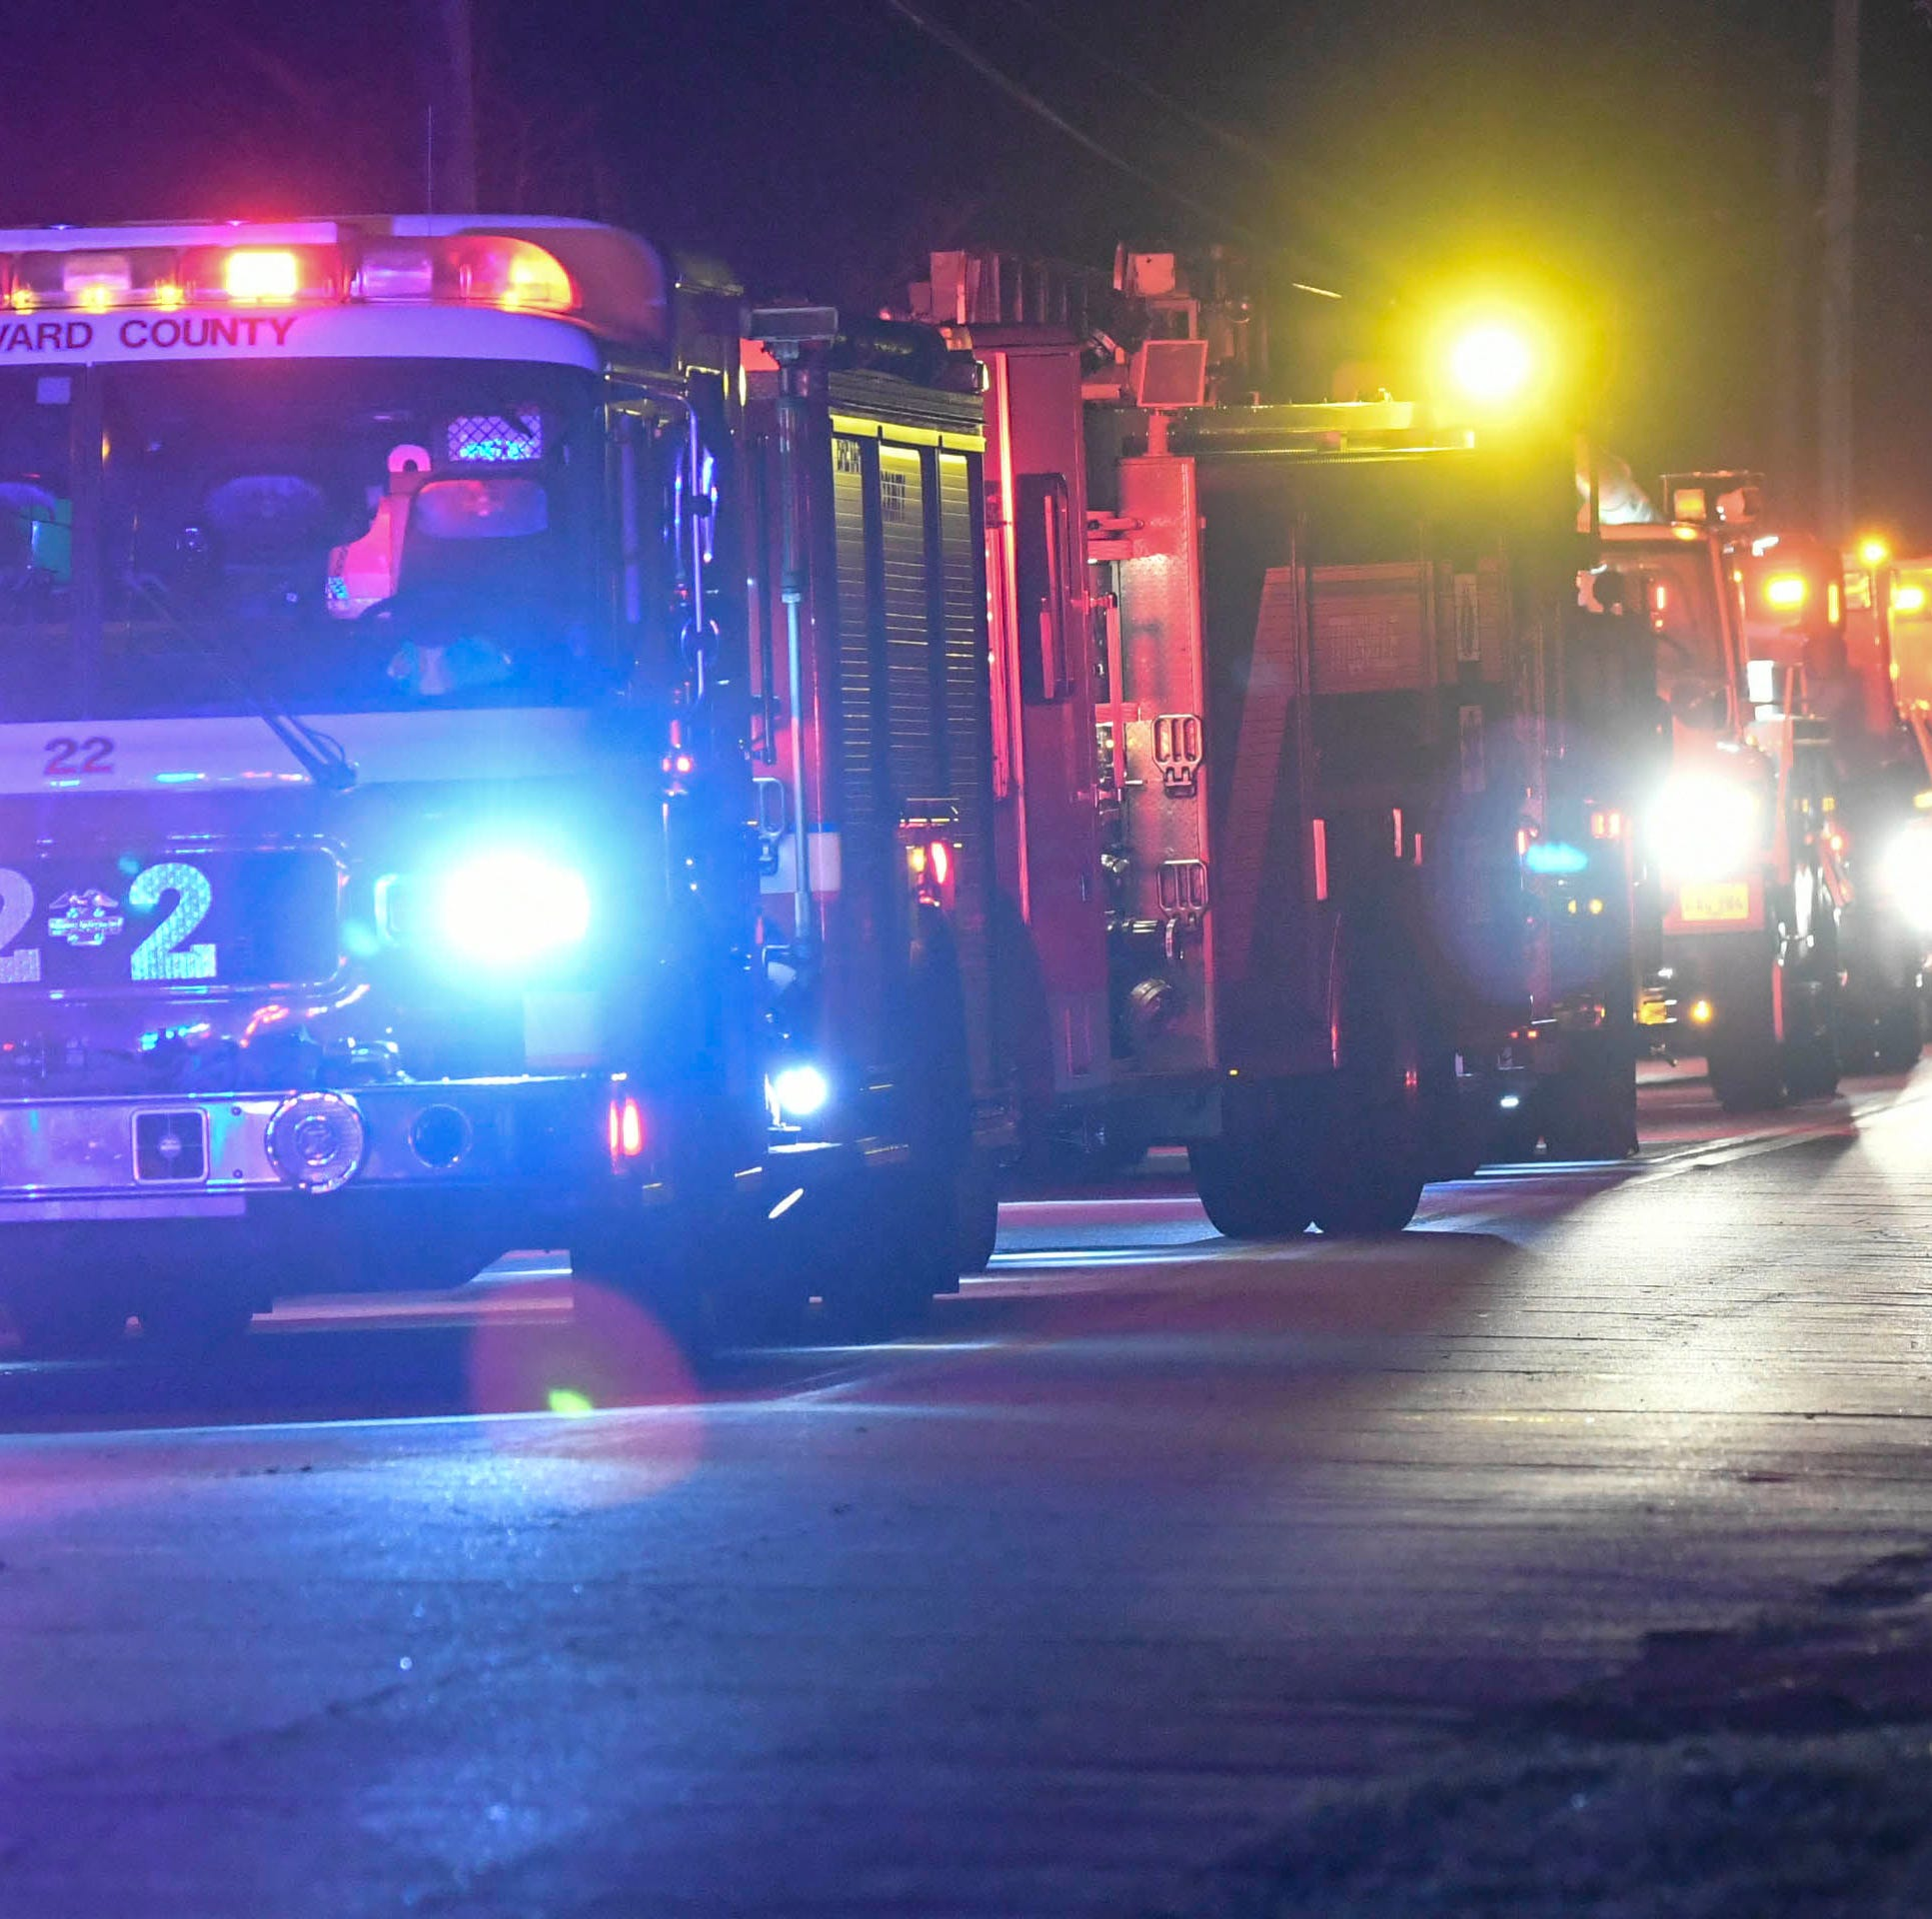 6-year-old child dies in Mims housefire